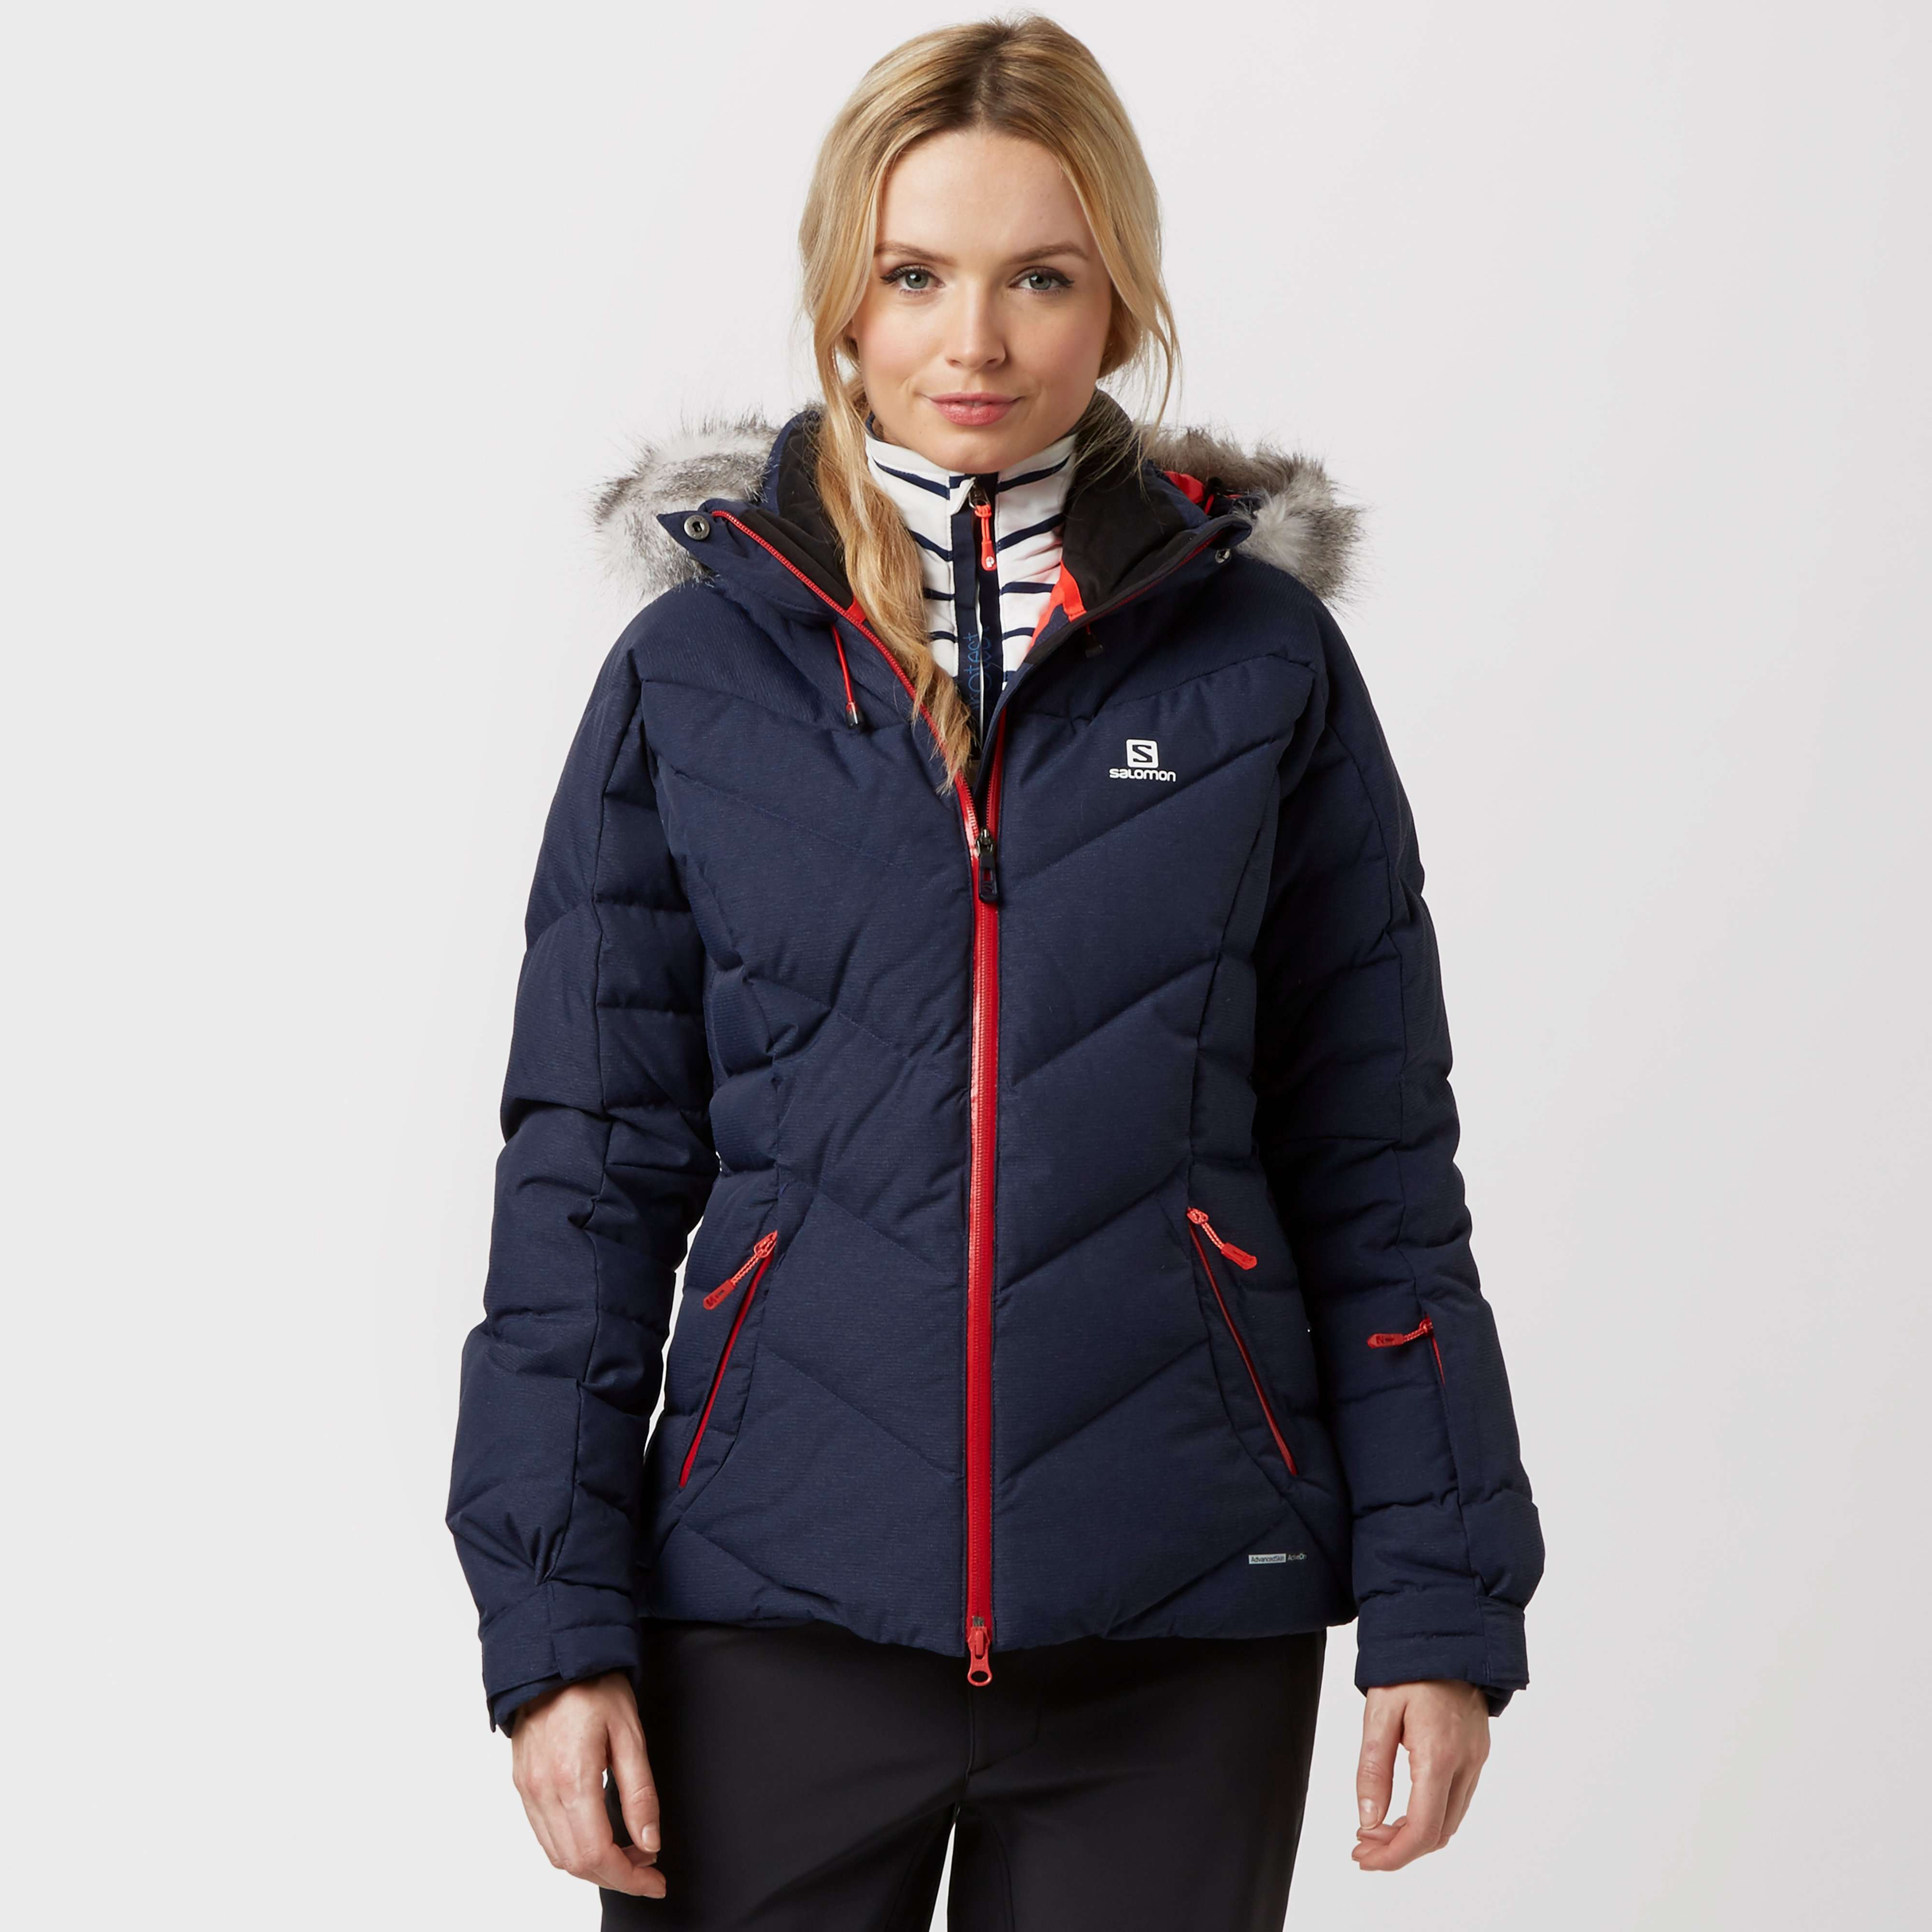 SALOMON Women's Icetown Ski Jacket